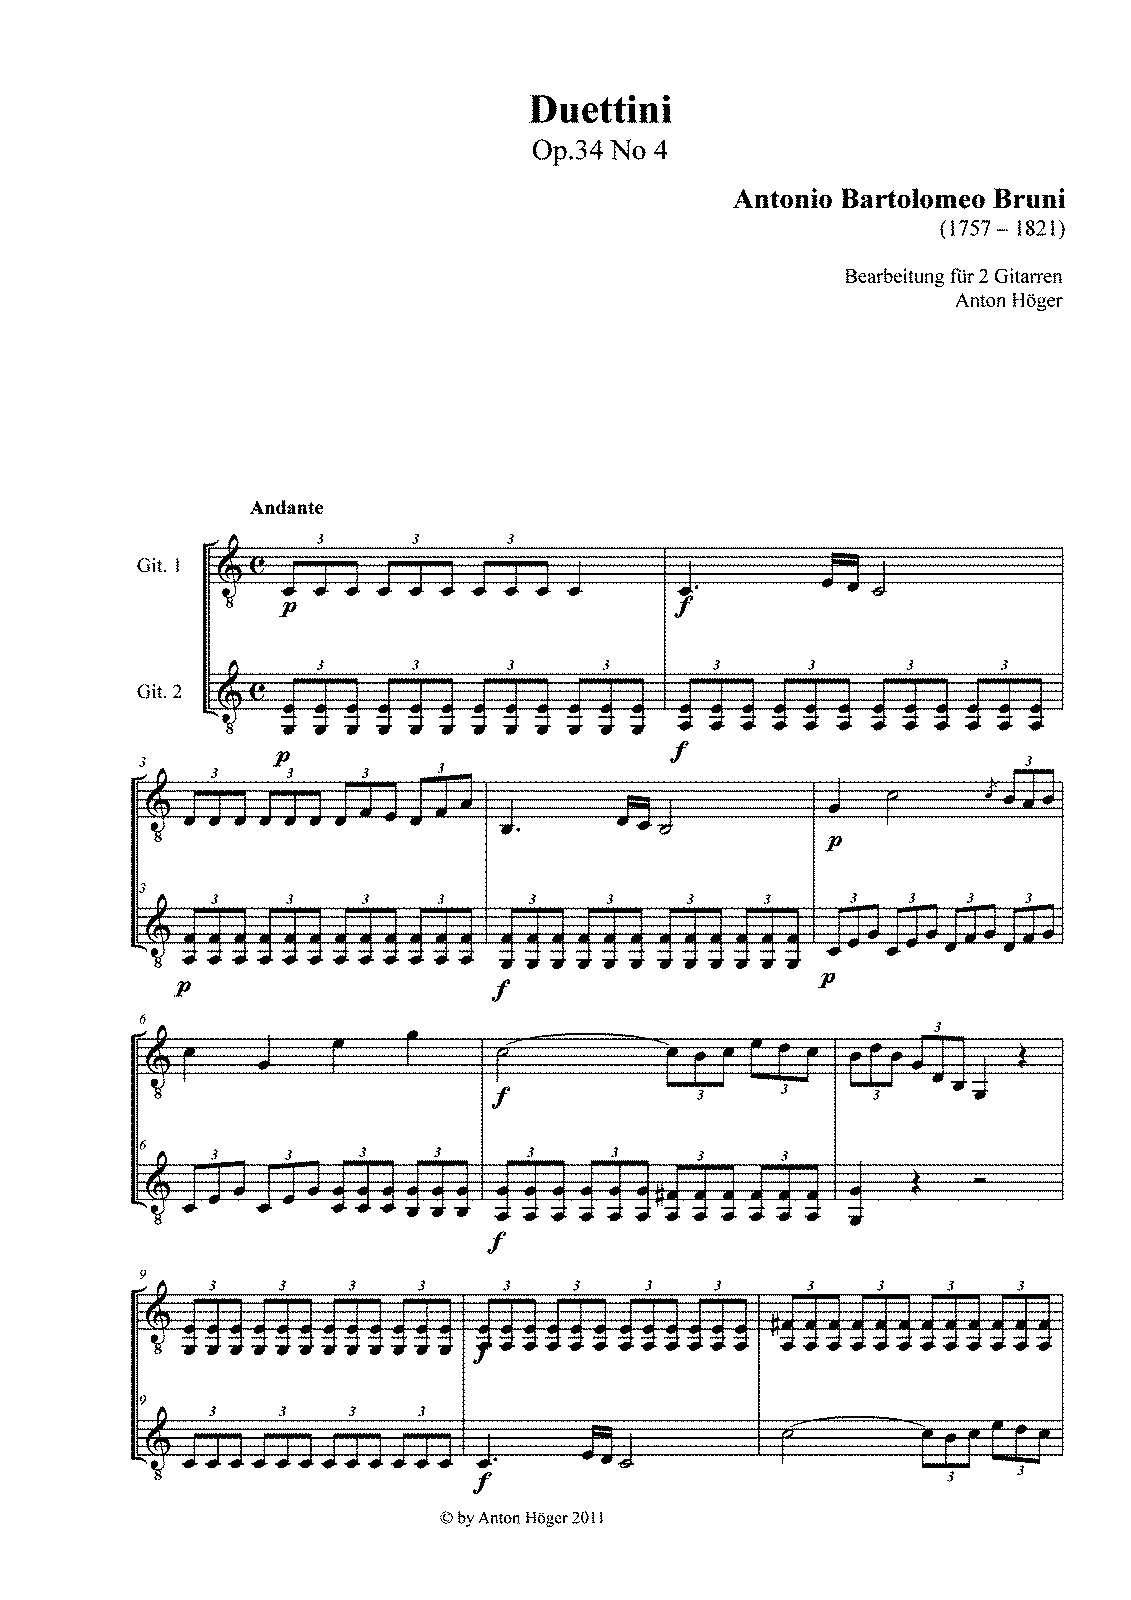 PMLP122884-Bruni, A.B. - Duettini Op.34 No4.pdf